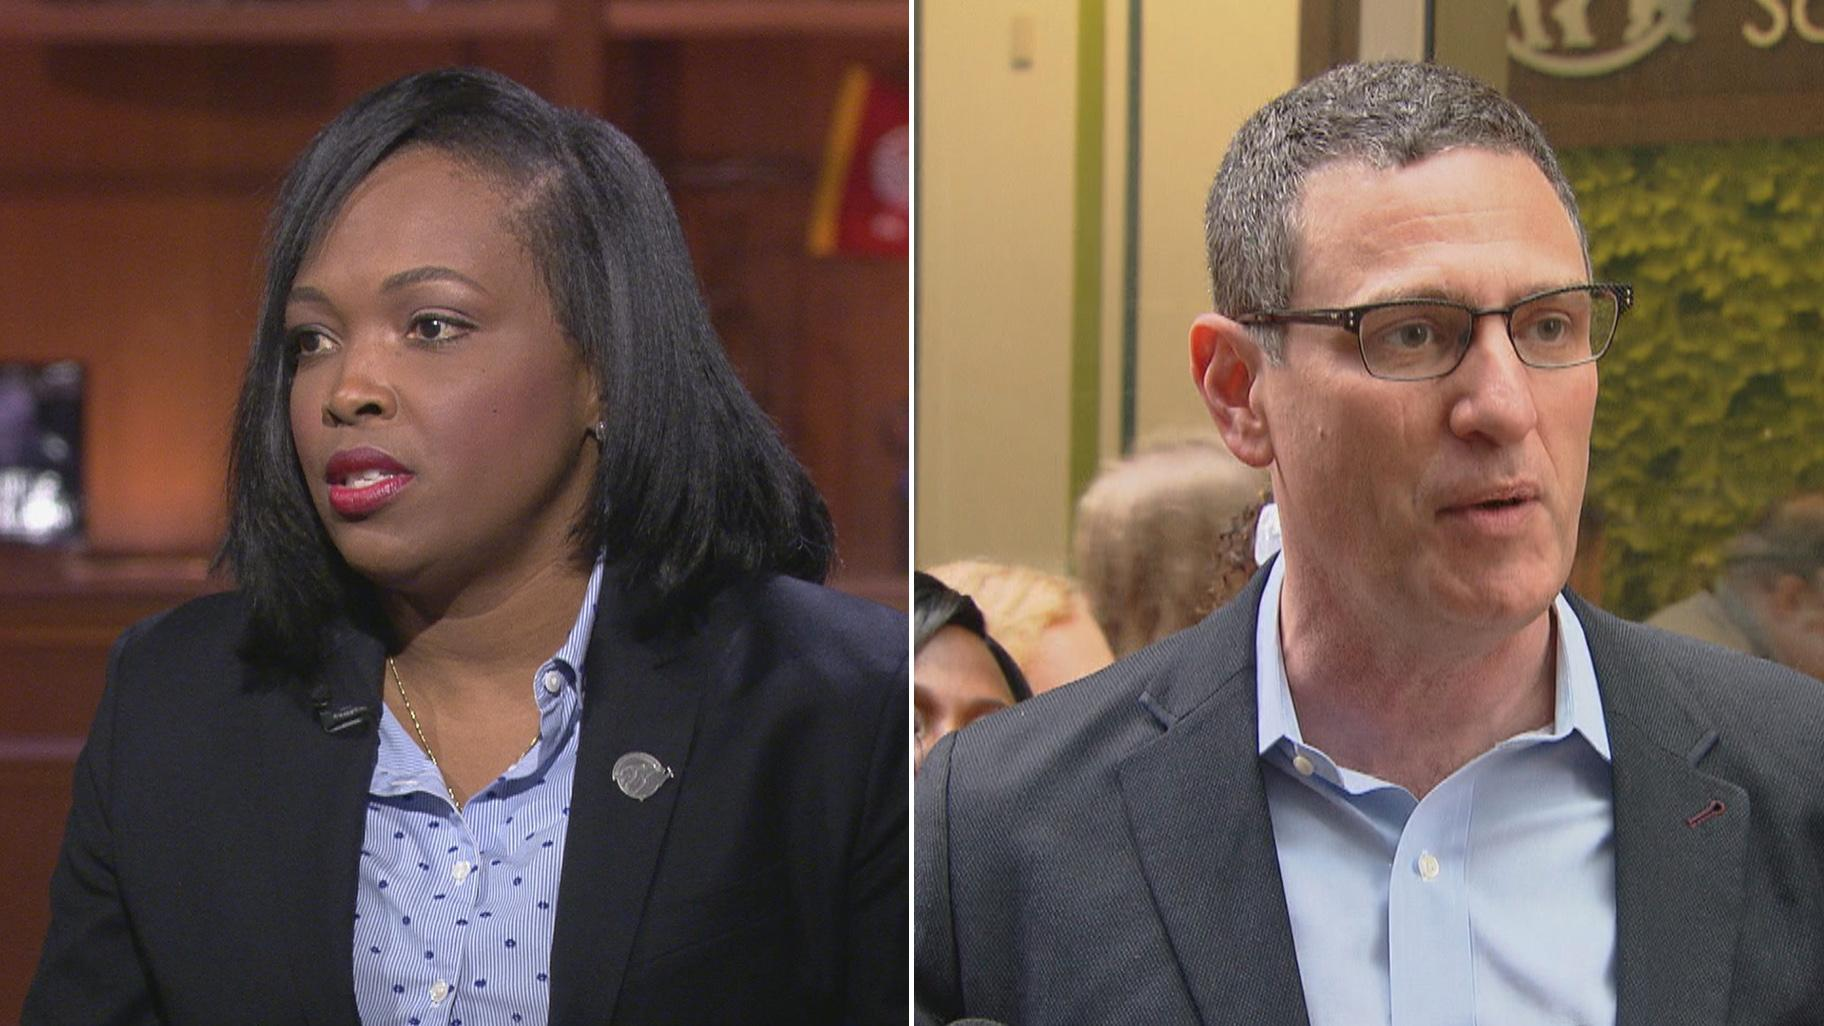 File photos of Chicago Public Schools CEO Janice Jackson, left, and Chicago Teachers Union President Jesse Sharkey. (WTTW News)